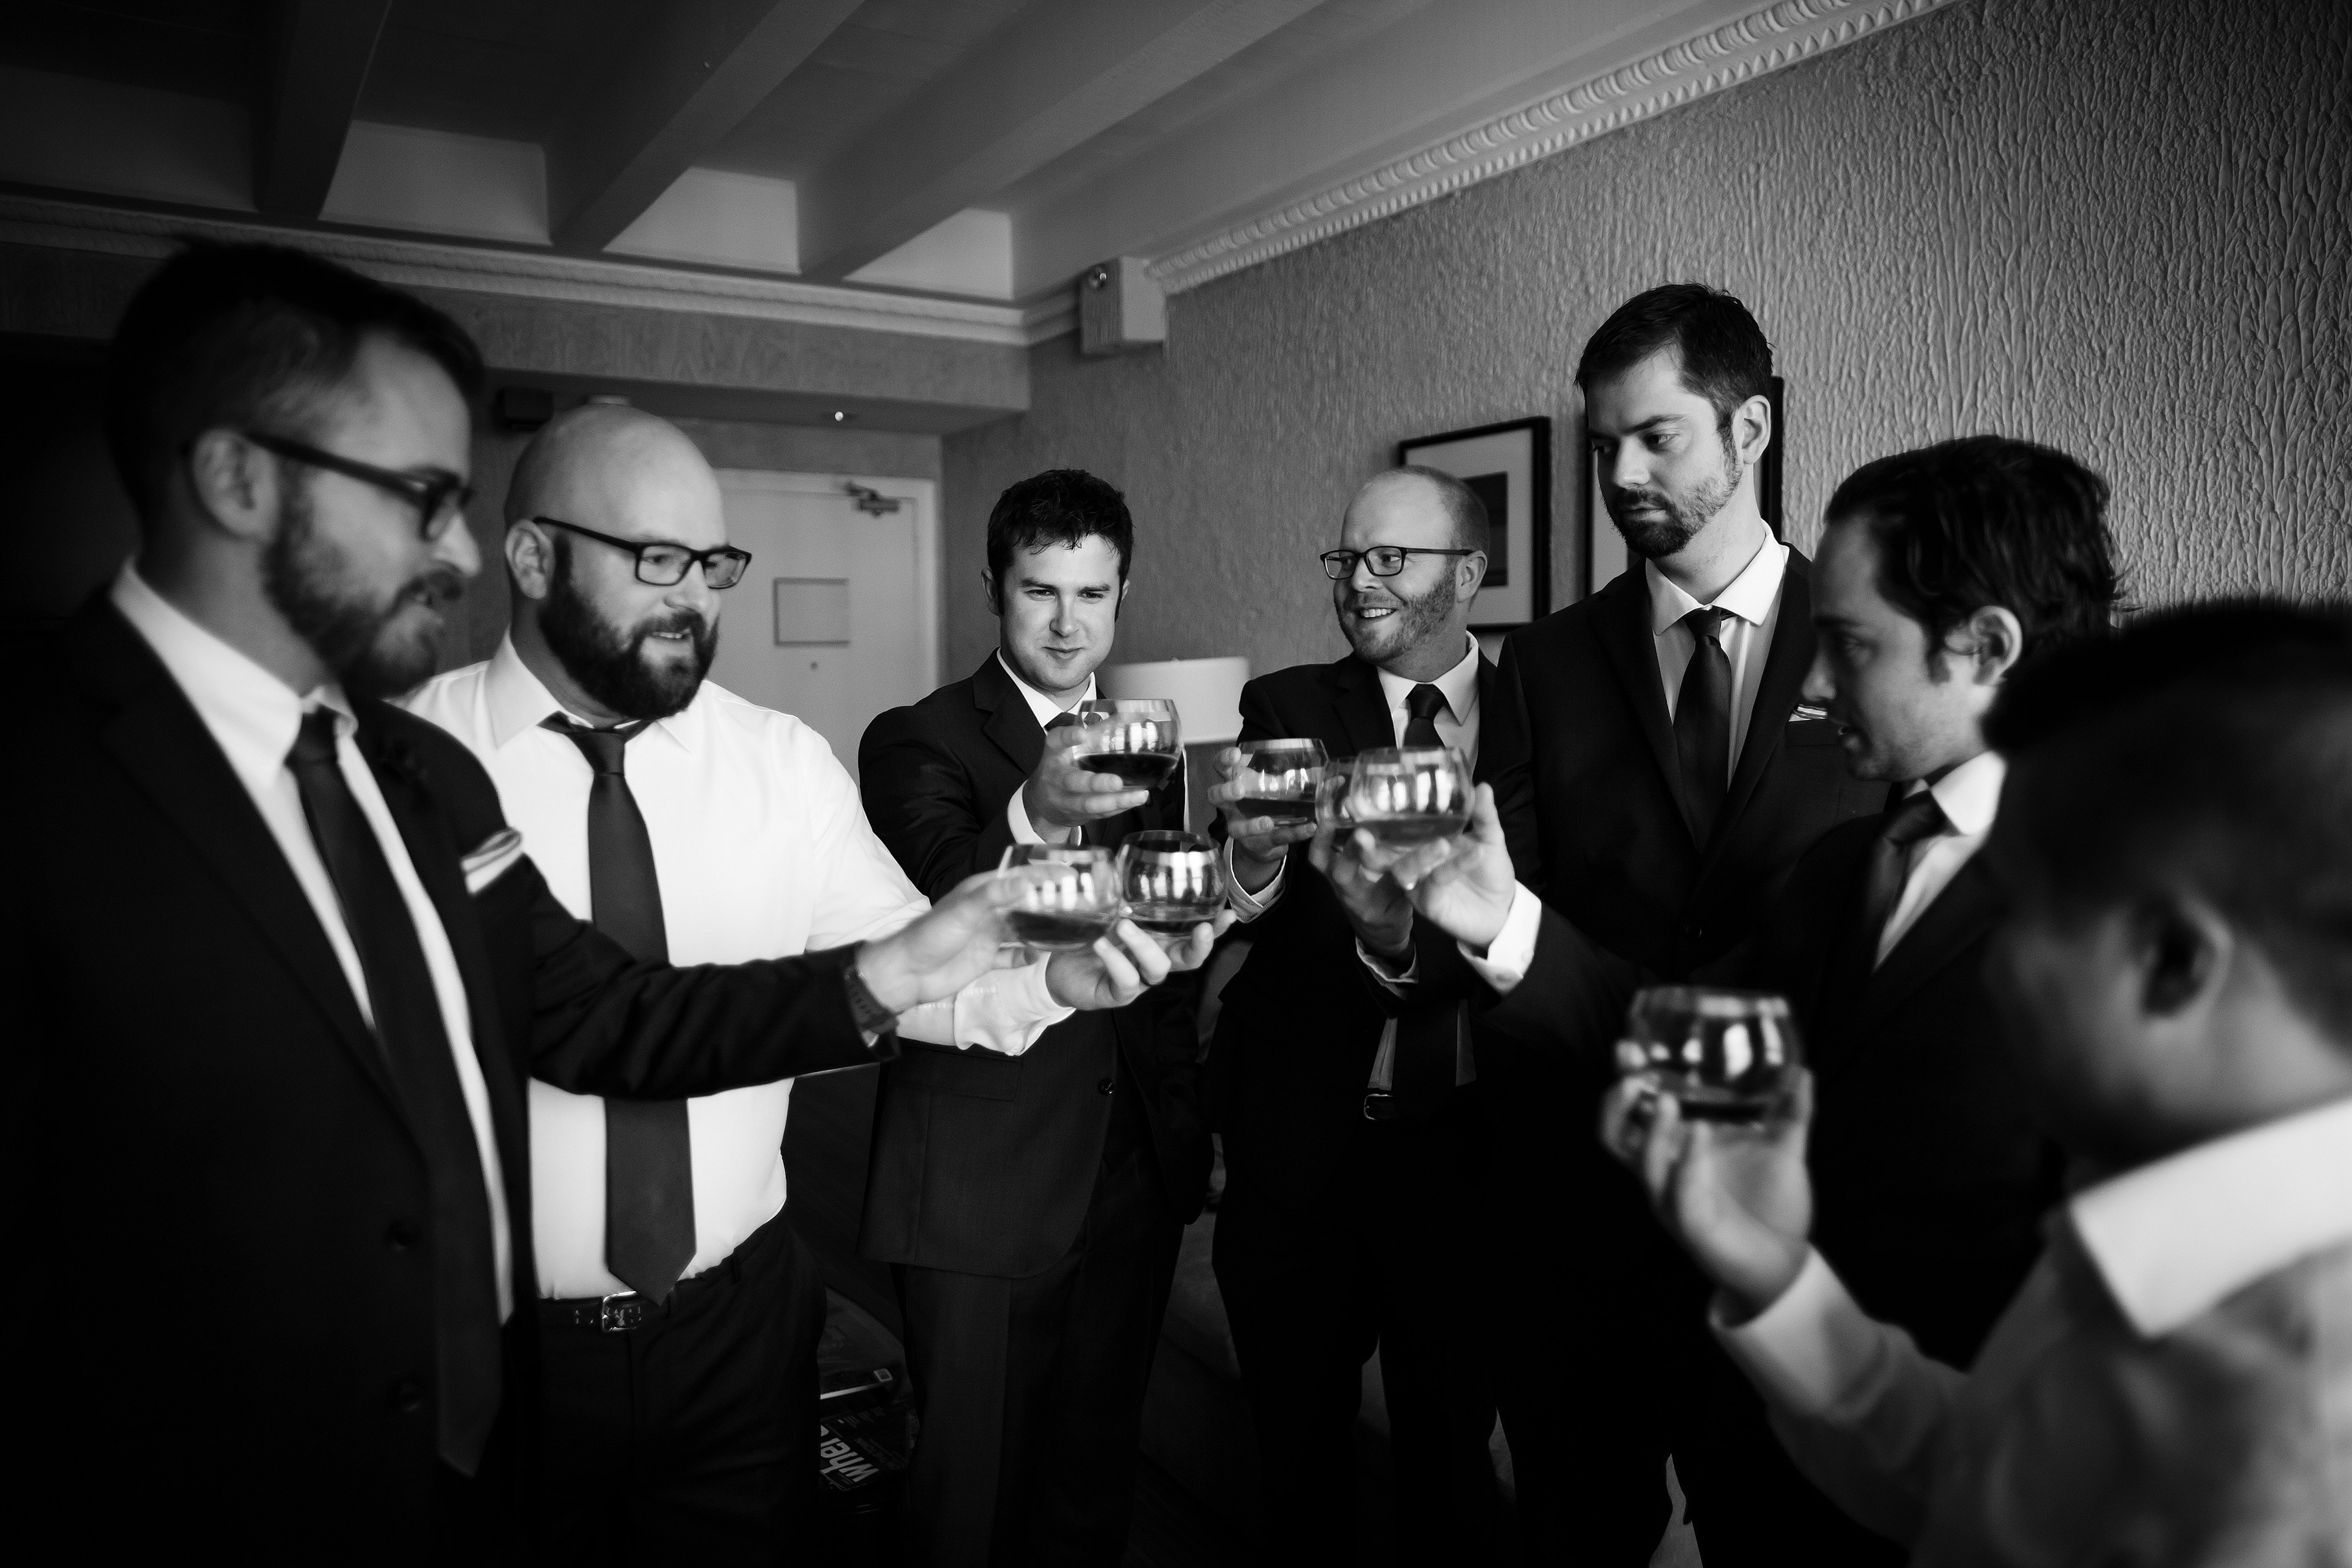 The groom and groomsmen share a drink before the ceremony